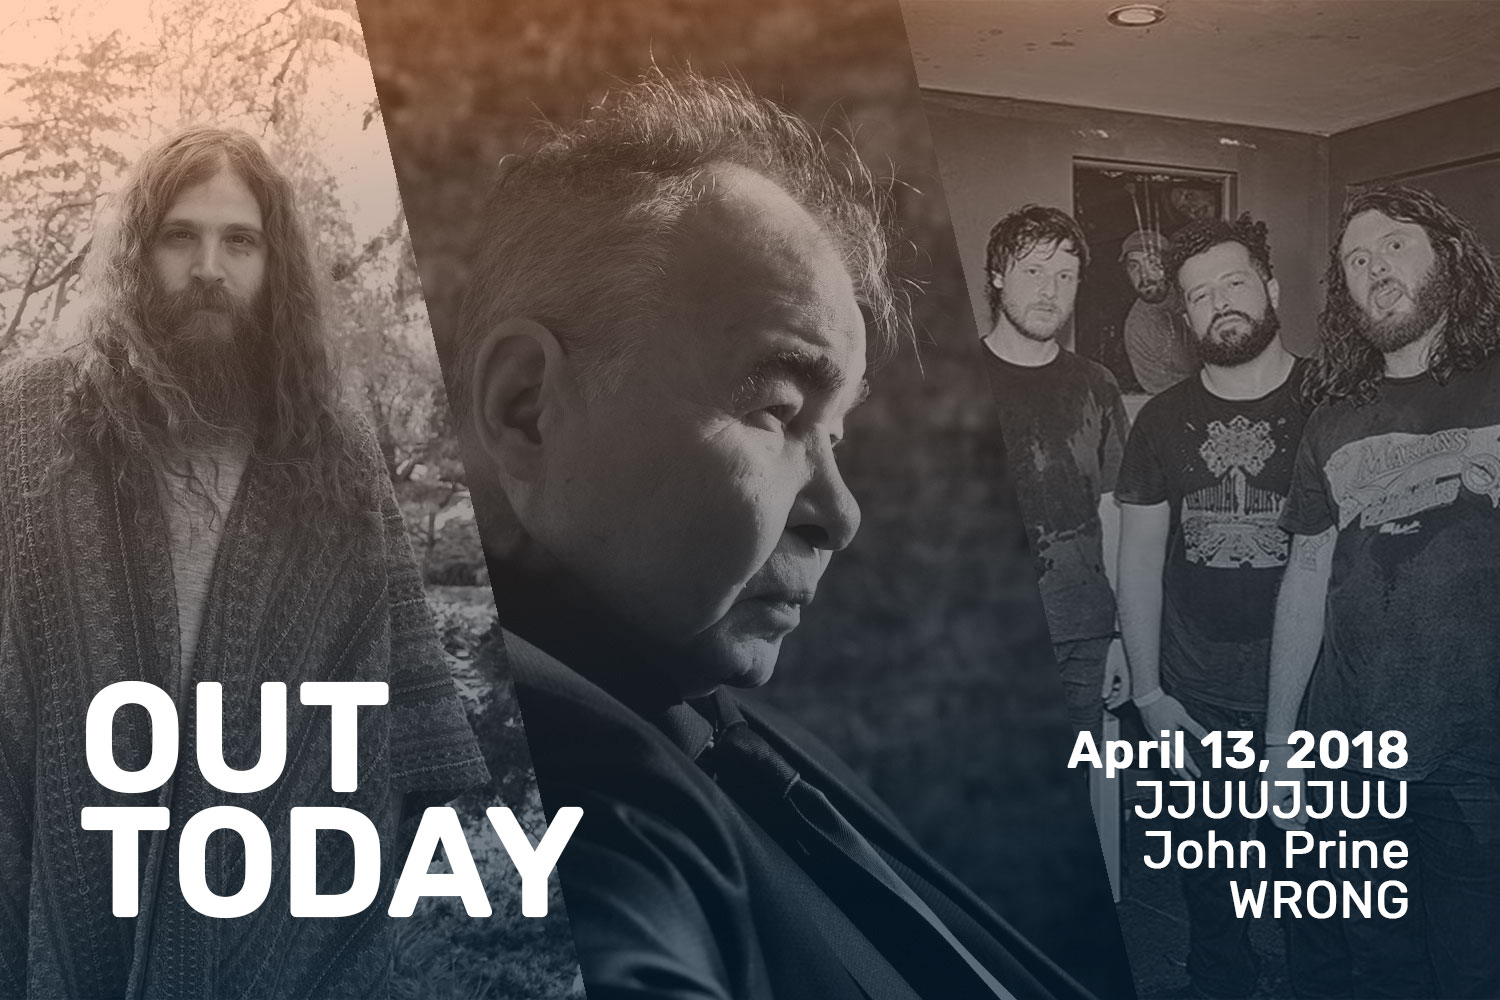 Out Today by The Orchard: JJUUJJUU, John Prine & More